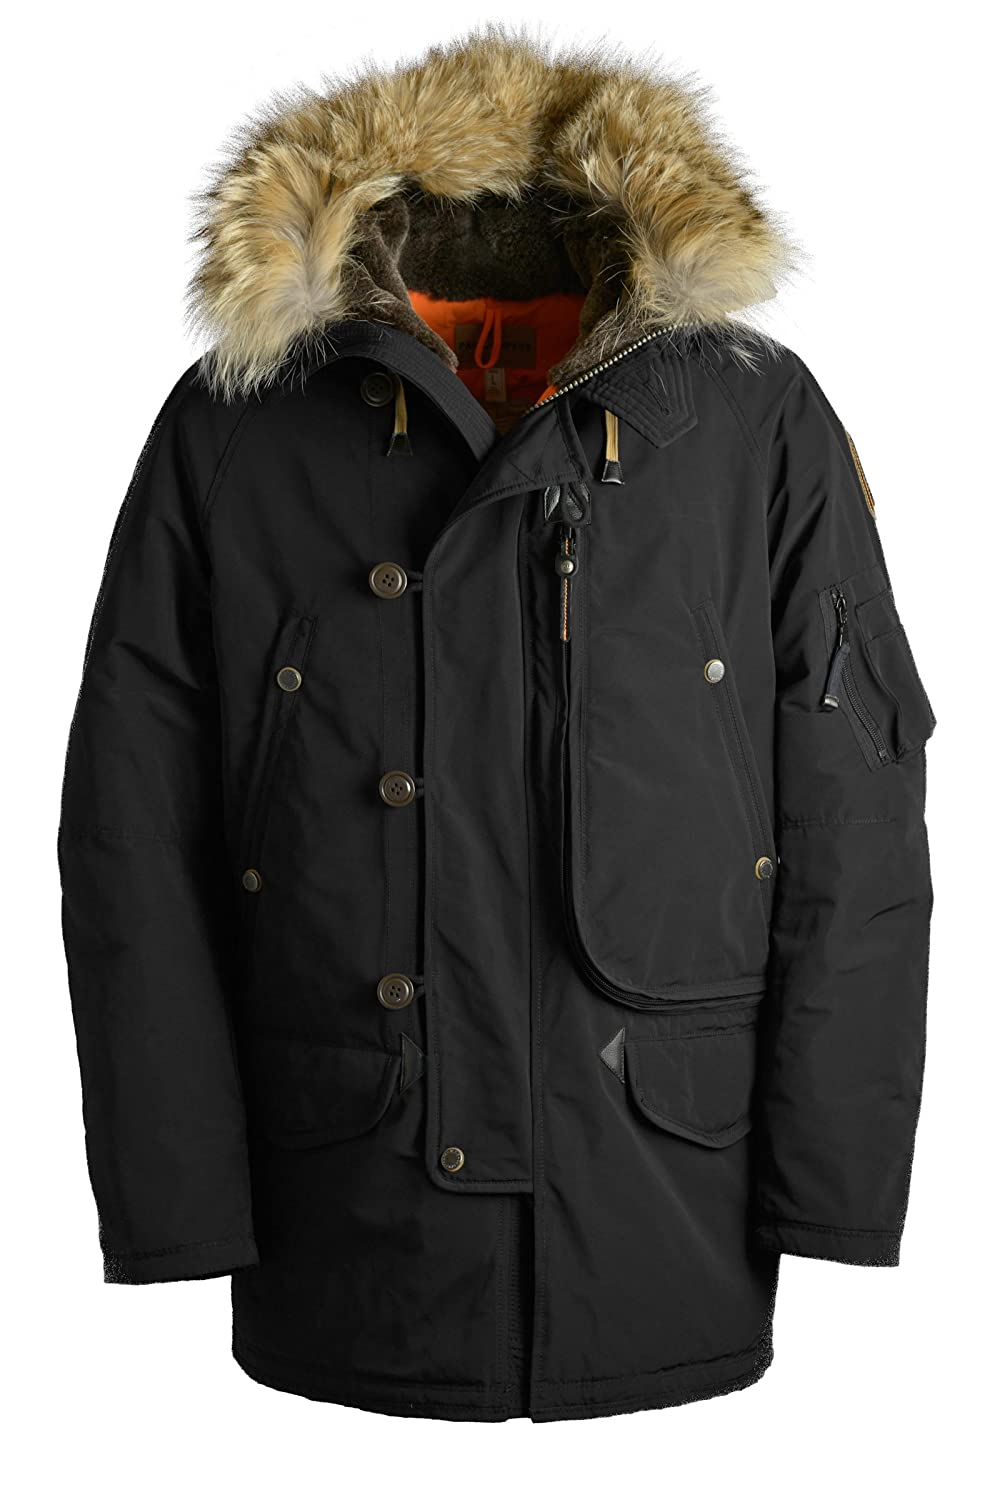 parajumpers SPECIAL EDITION BLUE